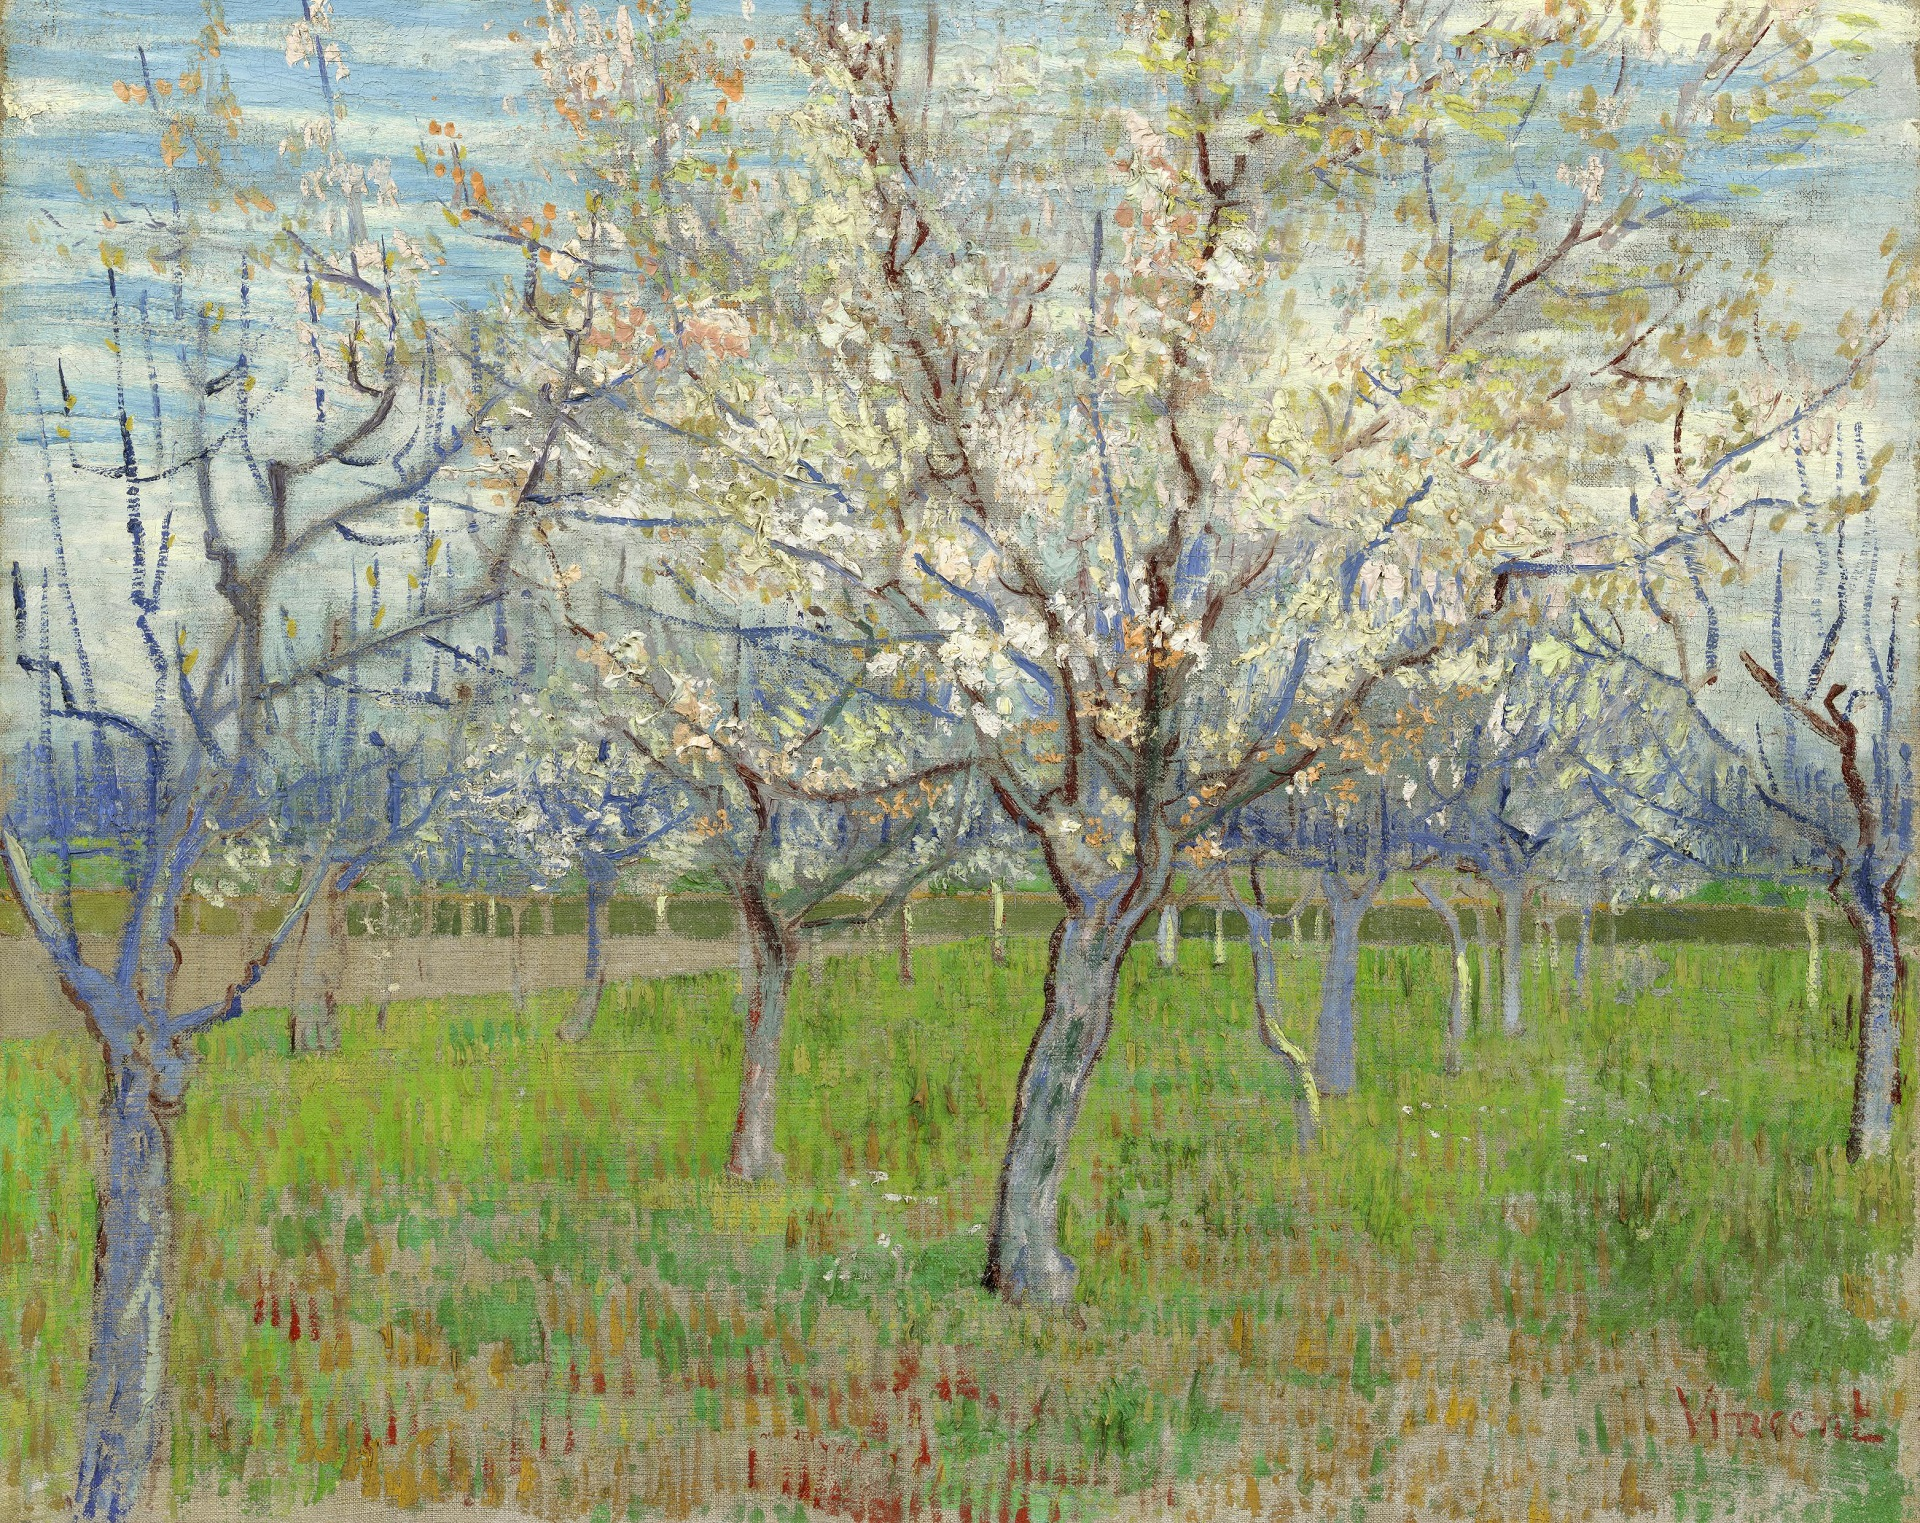 Orchard with Blossoming Apricot Trees 1888